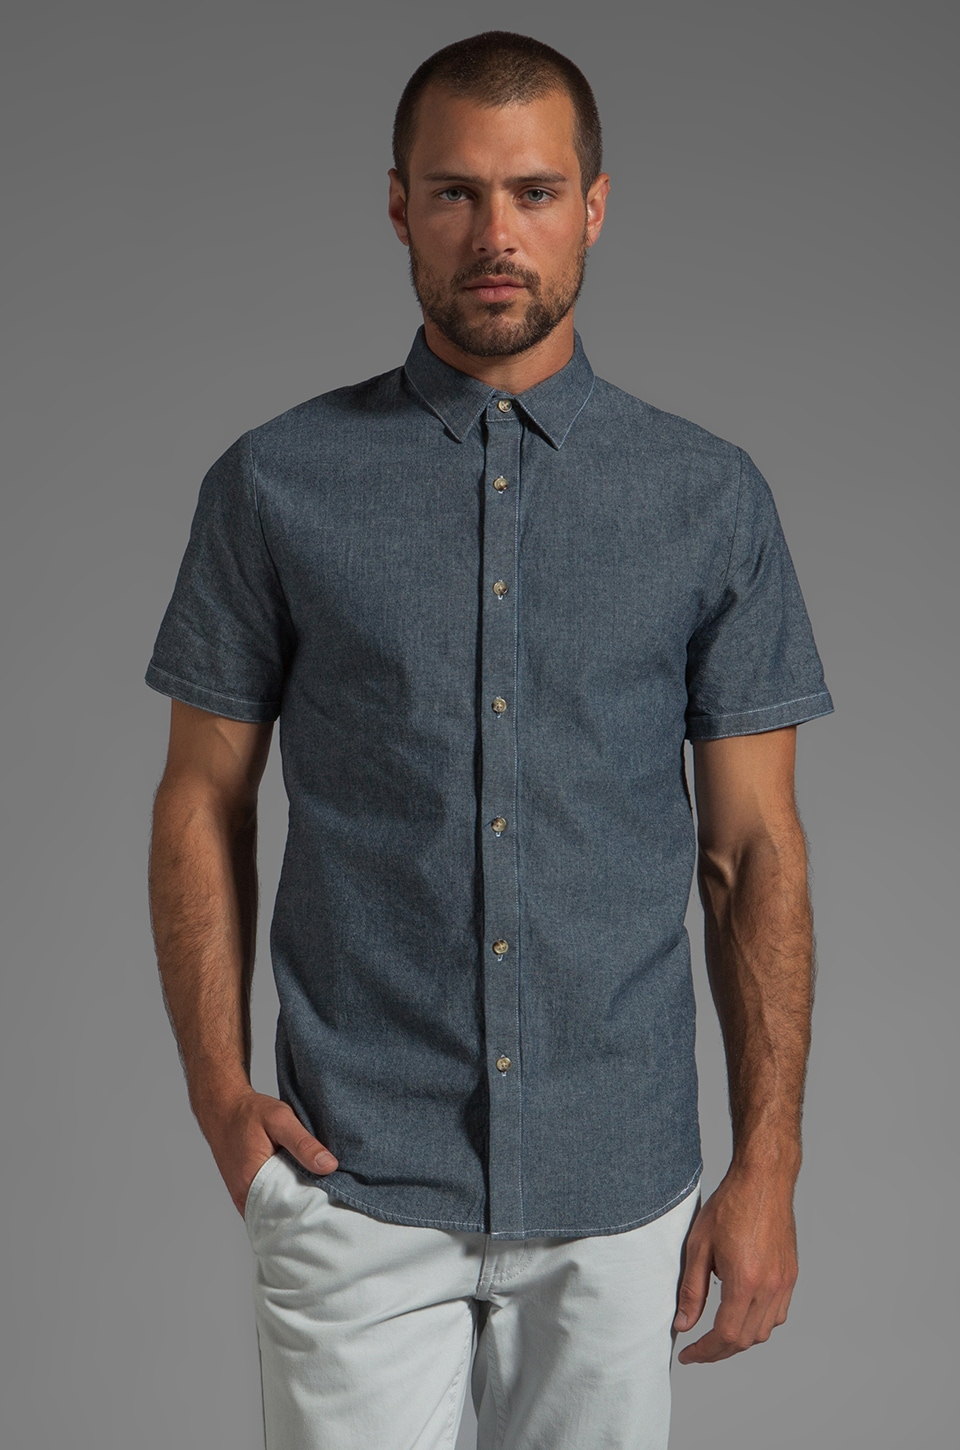 COMUNE Write S/S Shirt in Navy